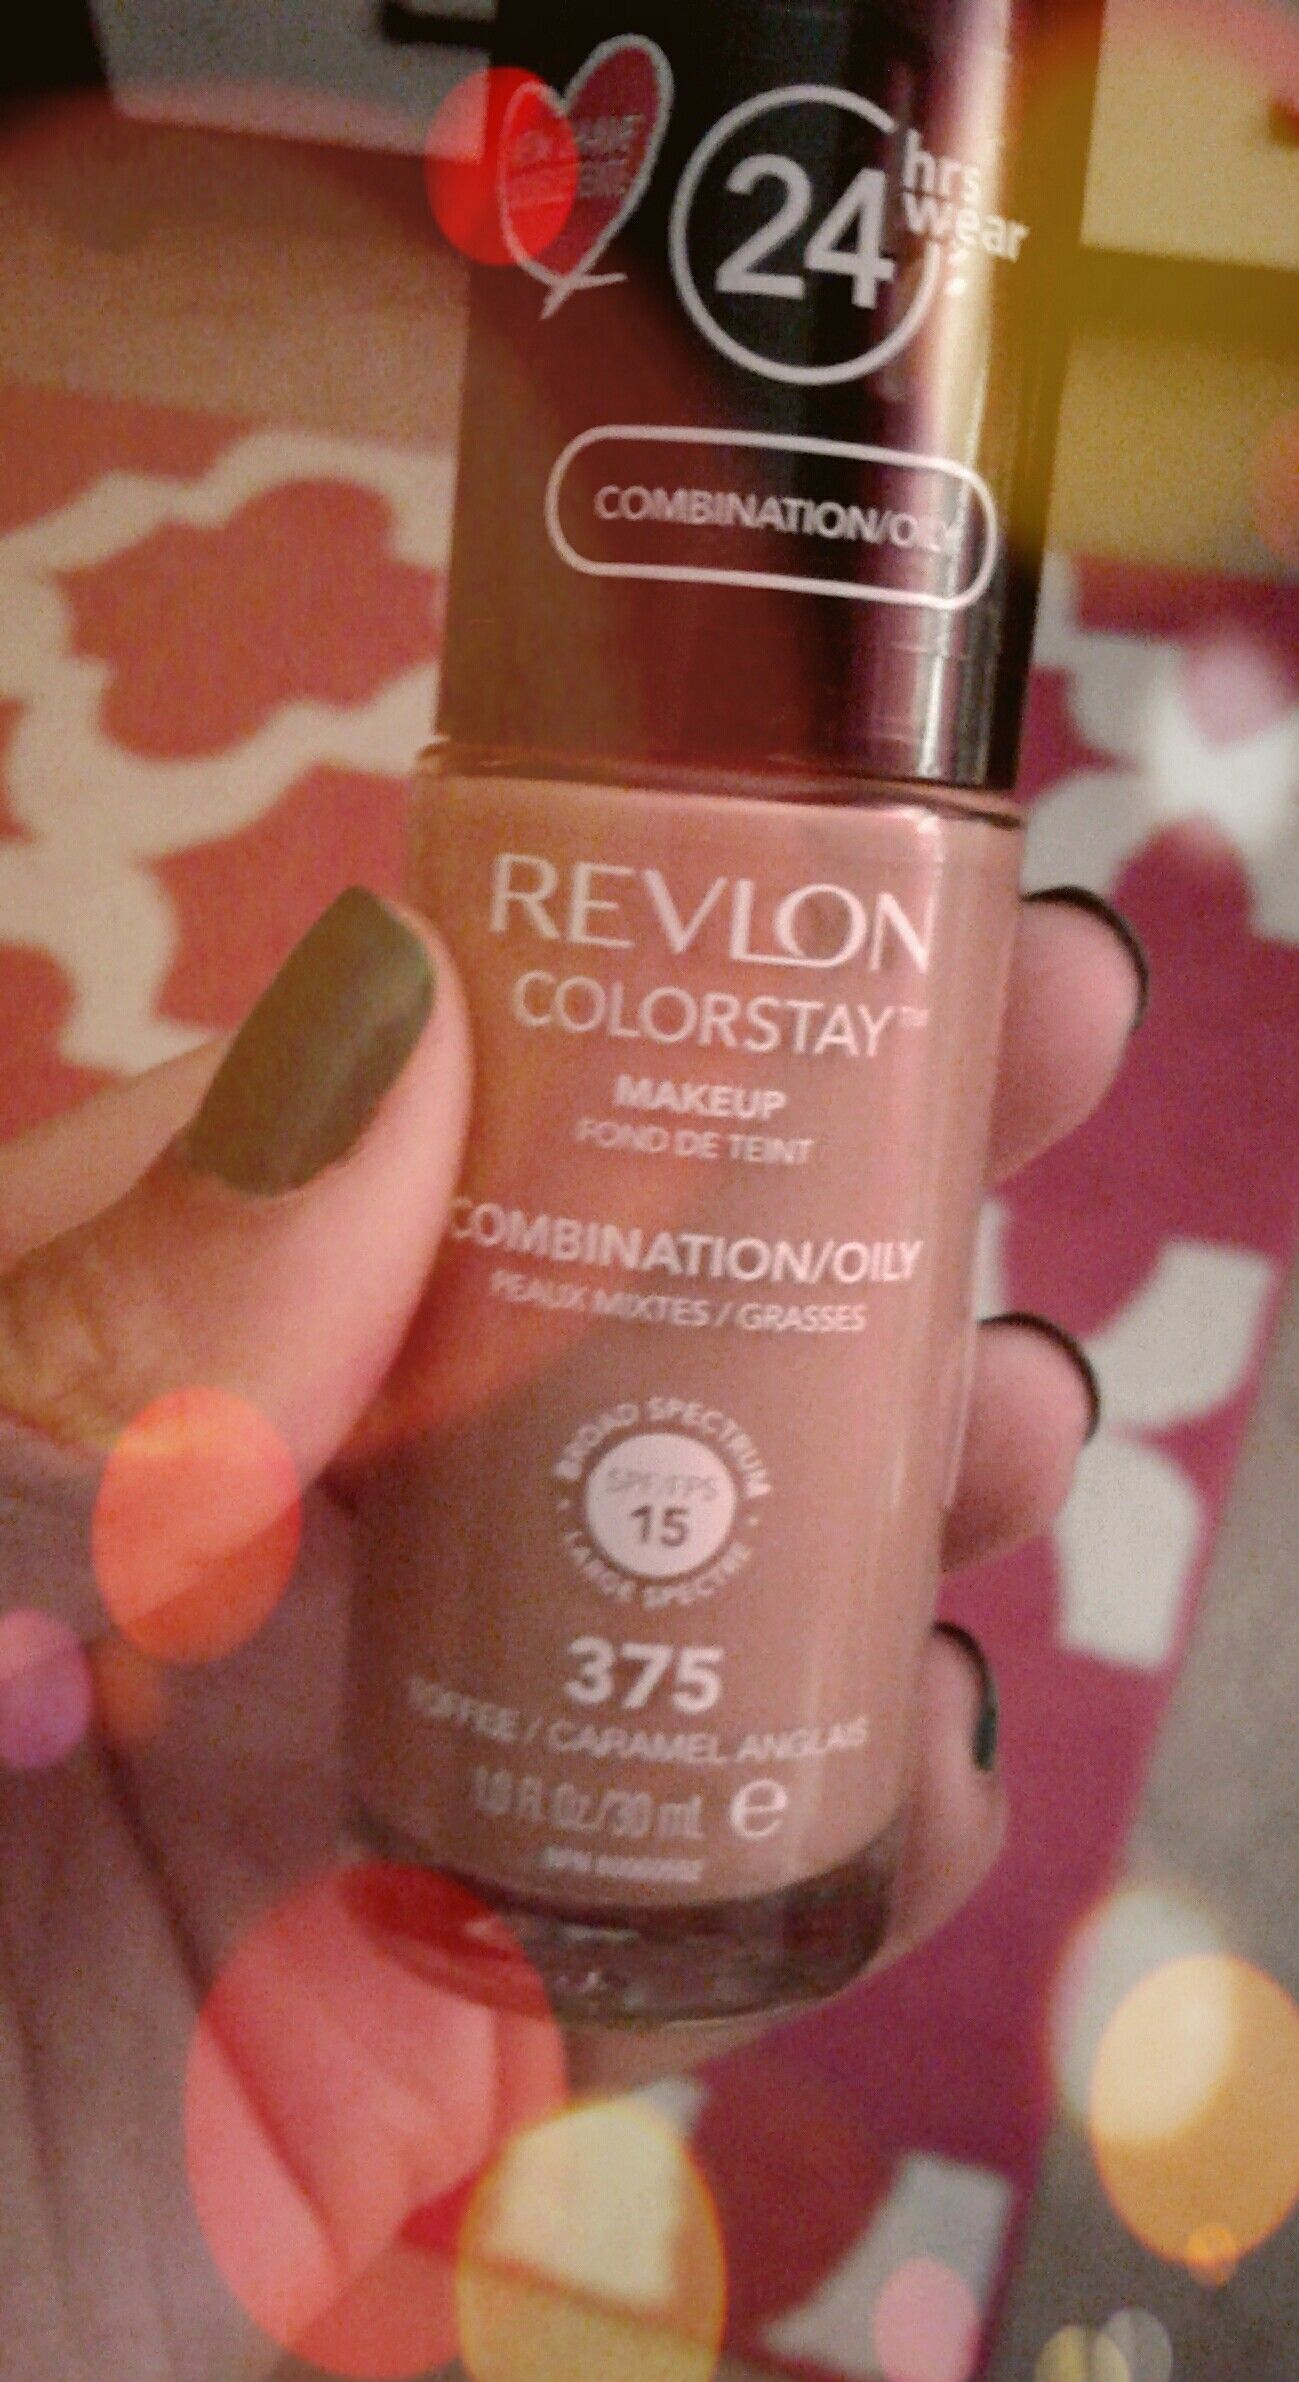 Revlon Colorstay foundation in 375 (Toffee/Caramel Anglais) | My ...